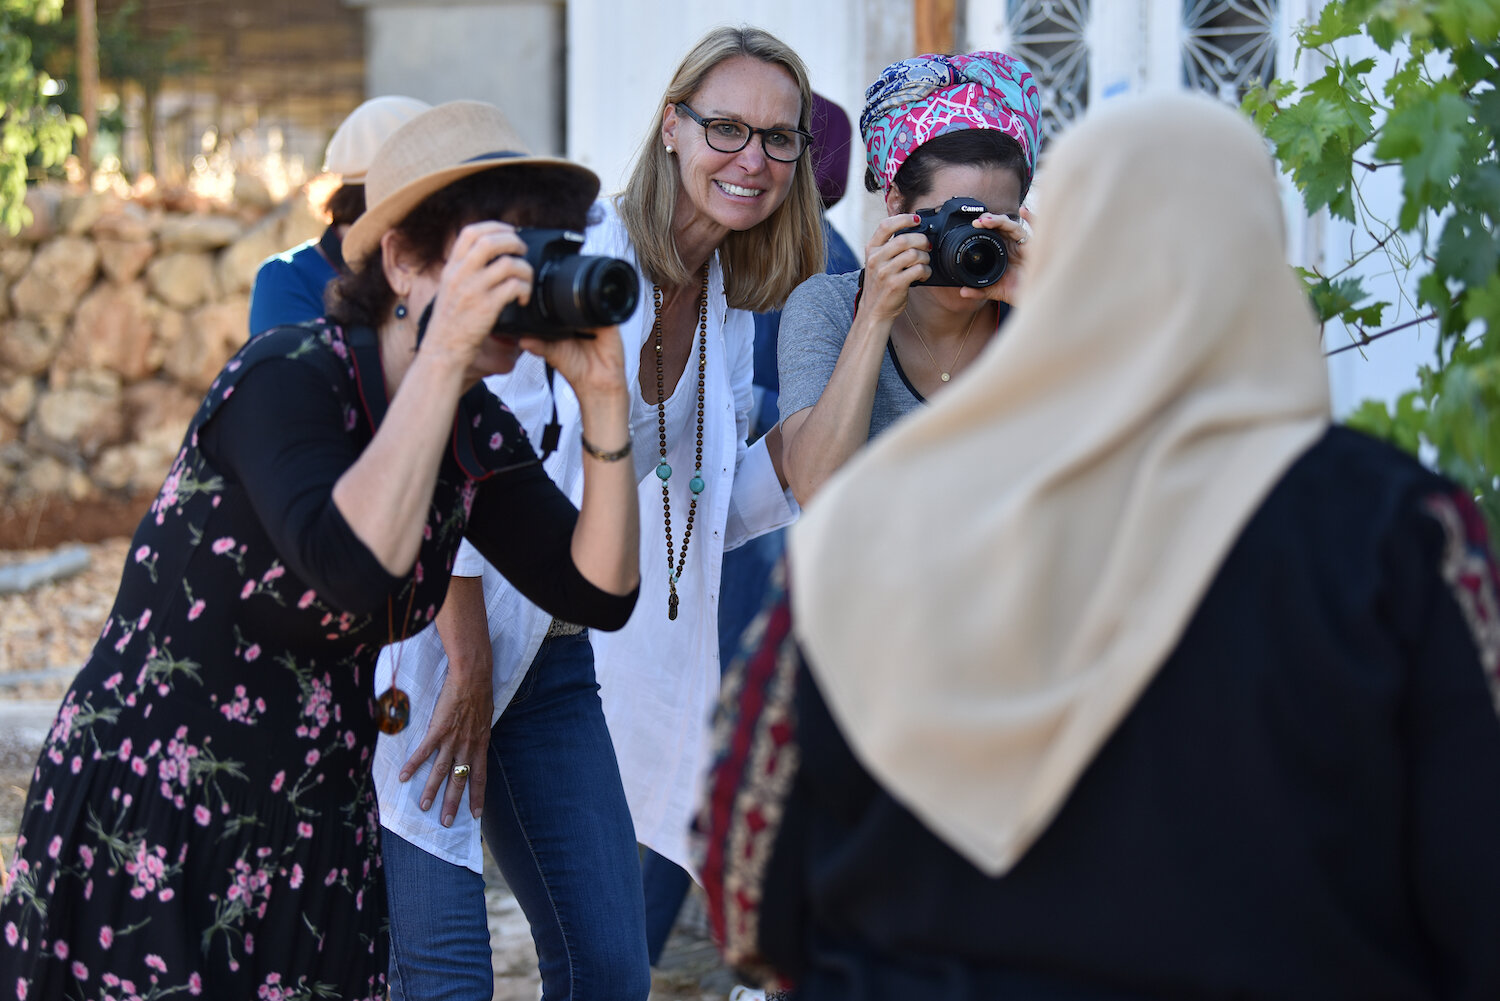 saskia-keeley-photography-humanitarian-photojournalism-documentarian-israel-and-palestine-peace-beyond-sides-towards-reconciliation-roots-non-violence-workshops-DSC_4298.jpg